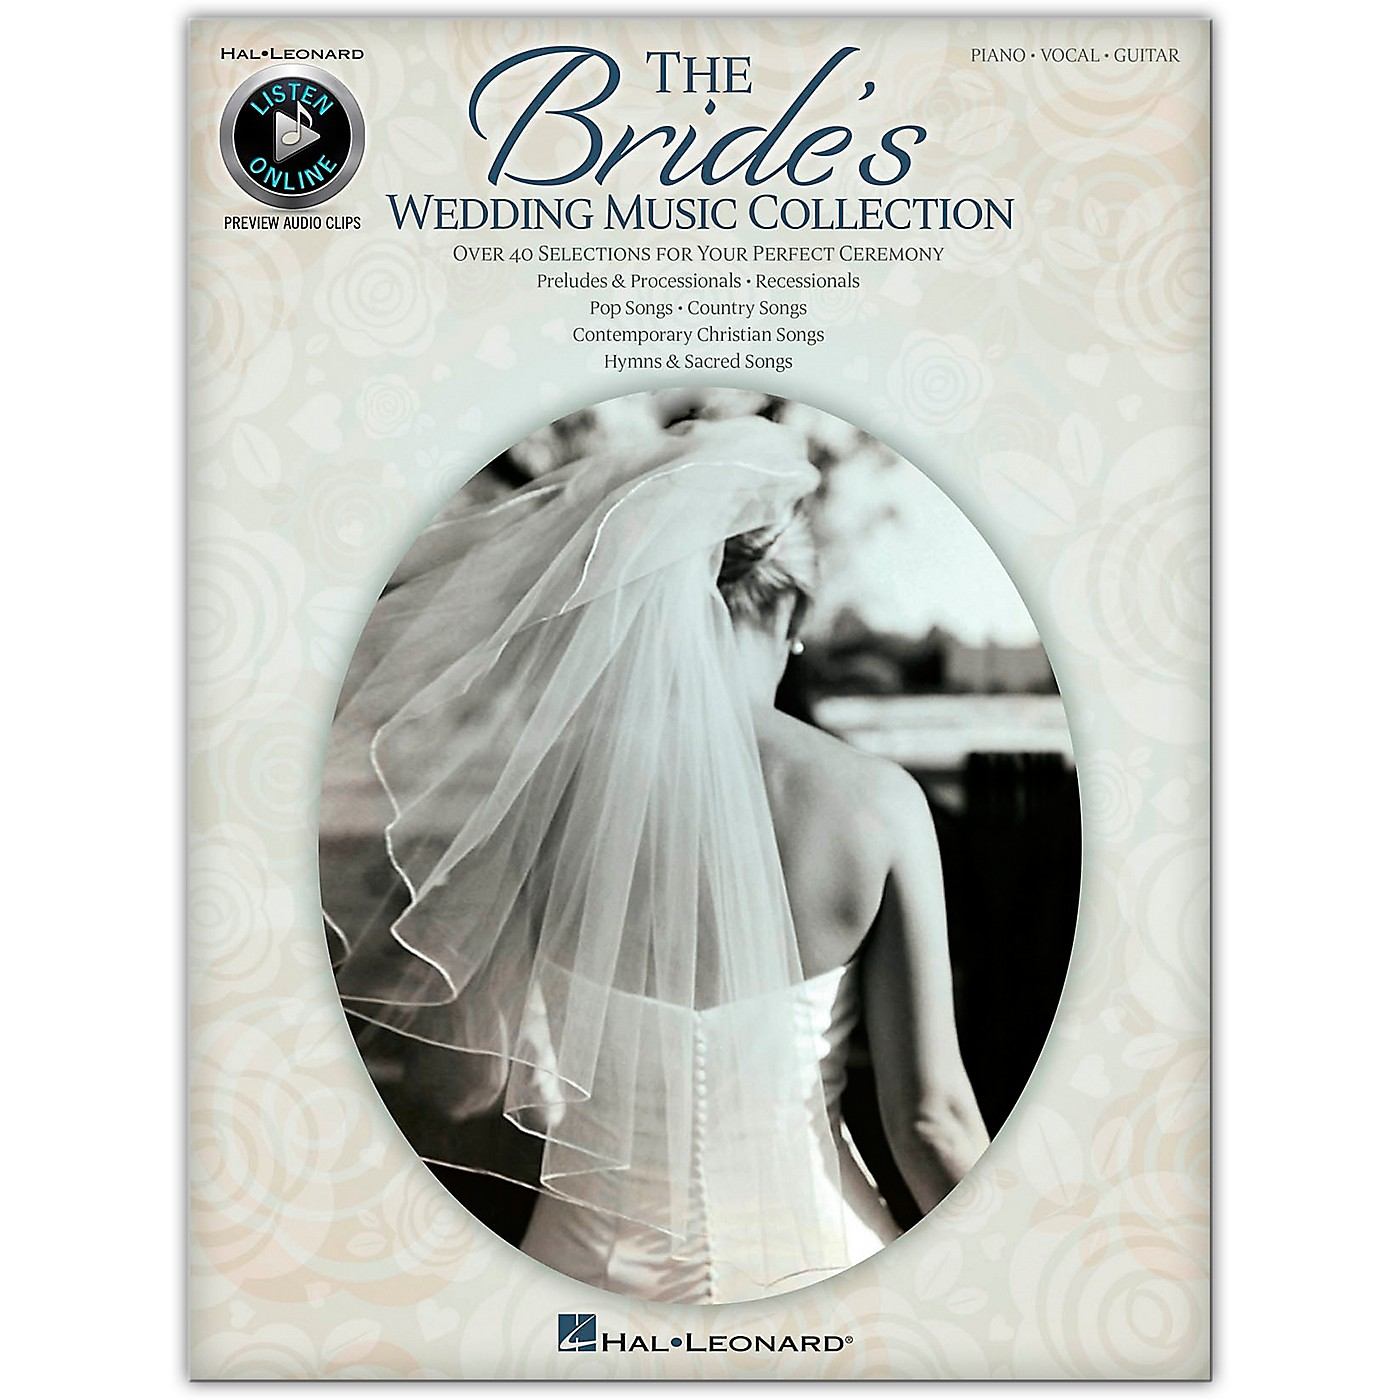 Hal Leonard The Bride's Wedding Music Collection for Piano/Vocal/Guitar (Book/Online Audio) thumbnail